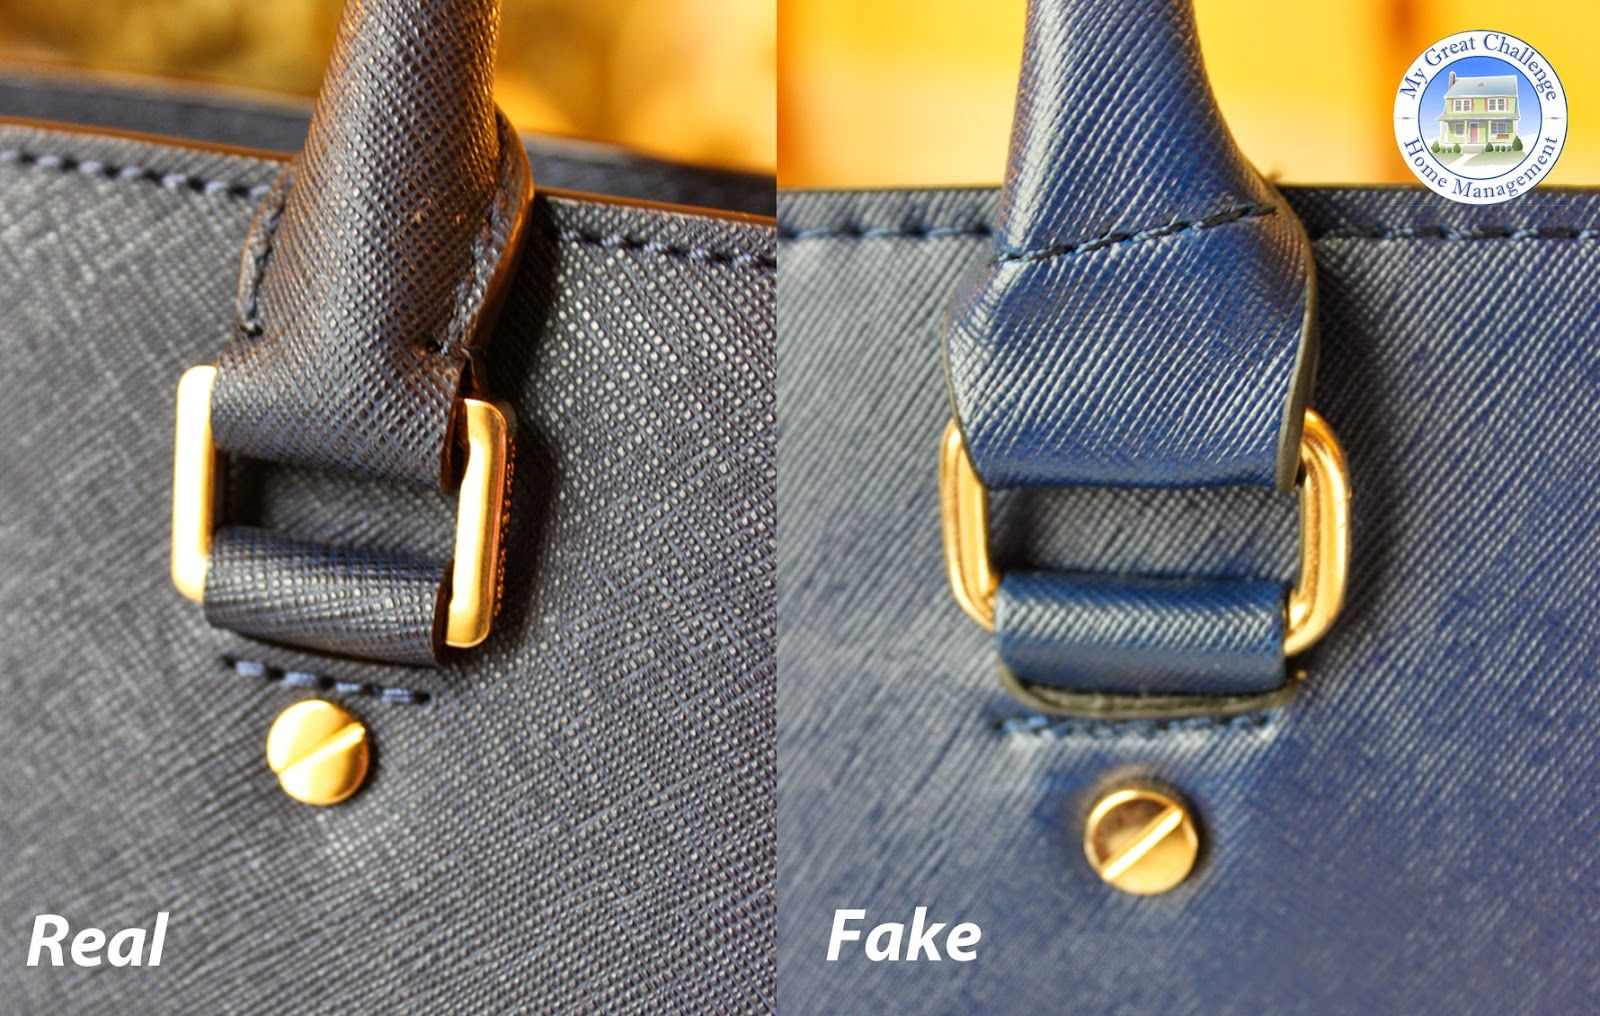 clearance prices new images of online retailer Pin by Thea Gumbao on MK real vs fake | Handbags michael ...